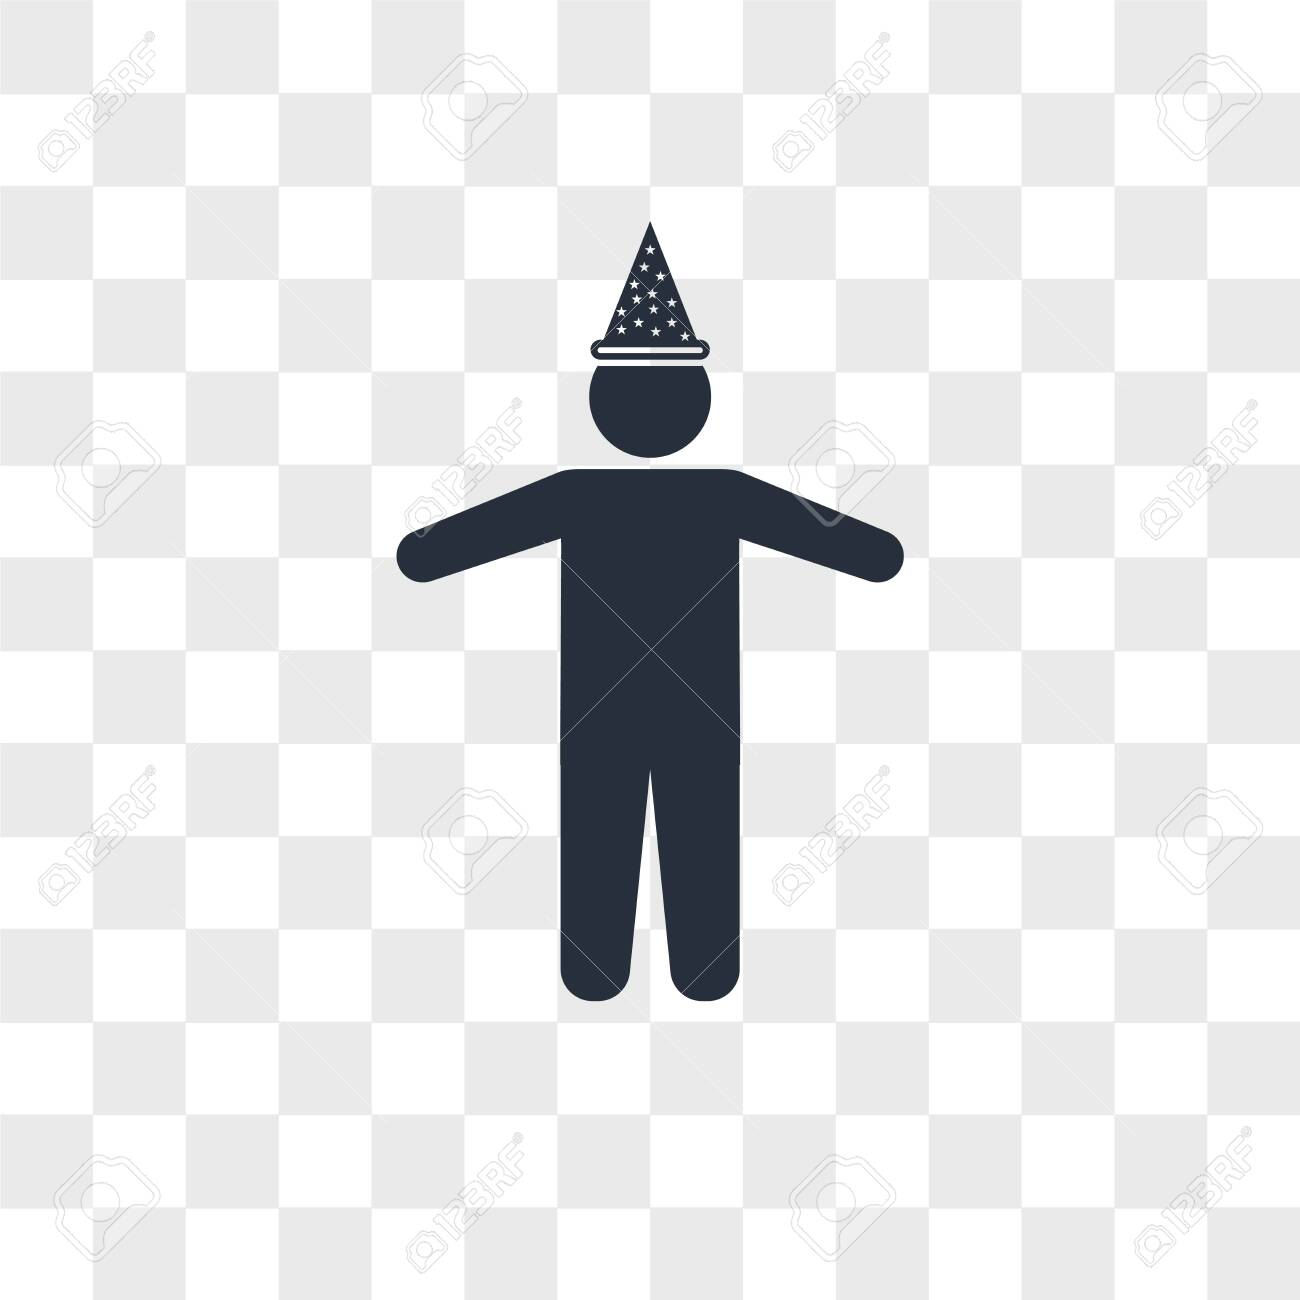 Man with birthday hat vector icon isolated on transparent background, Man with birthday hat logo concept - 150640938